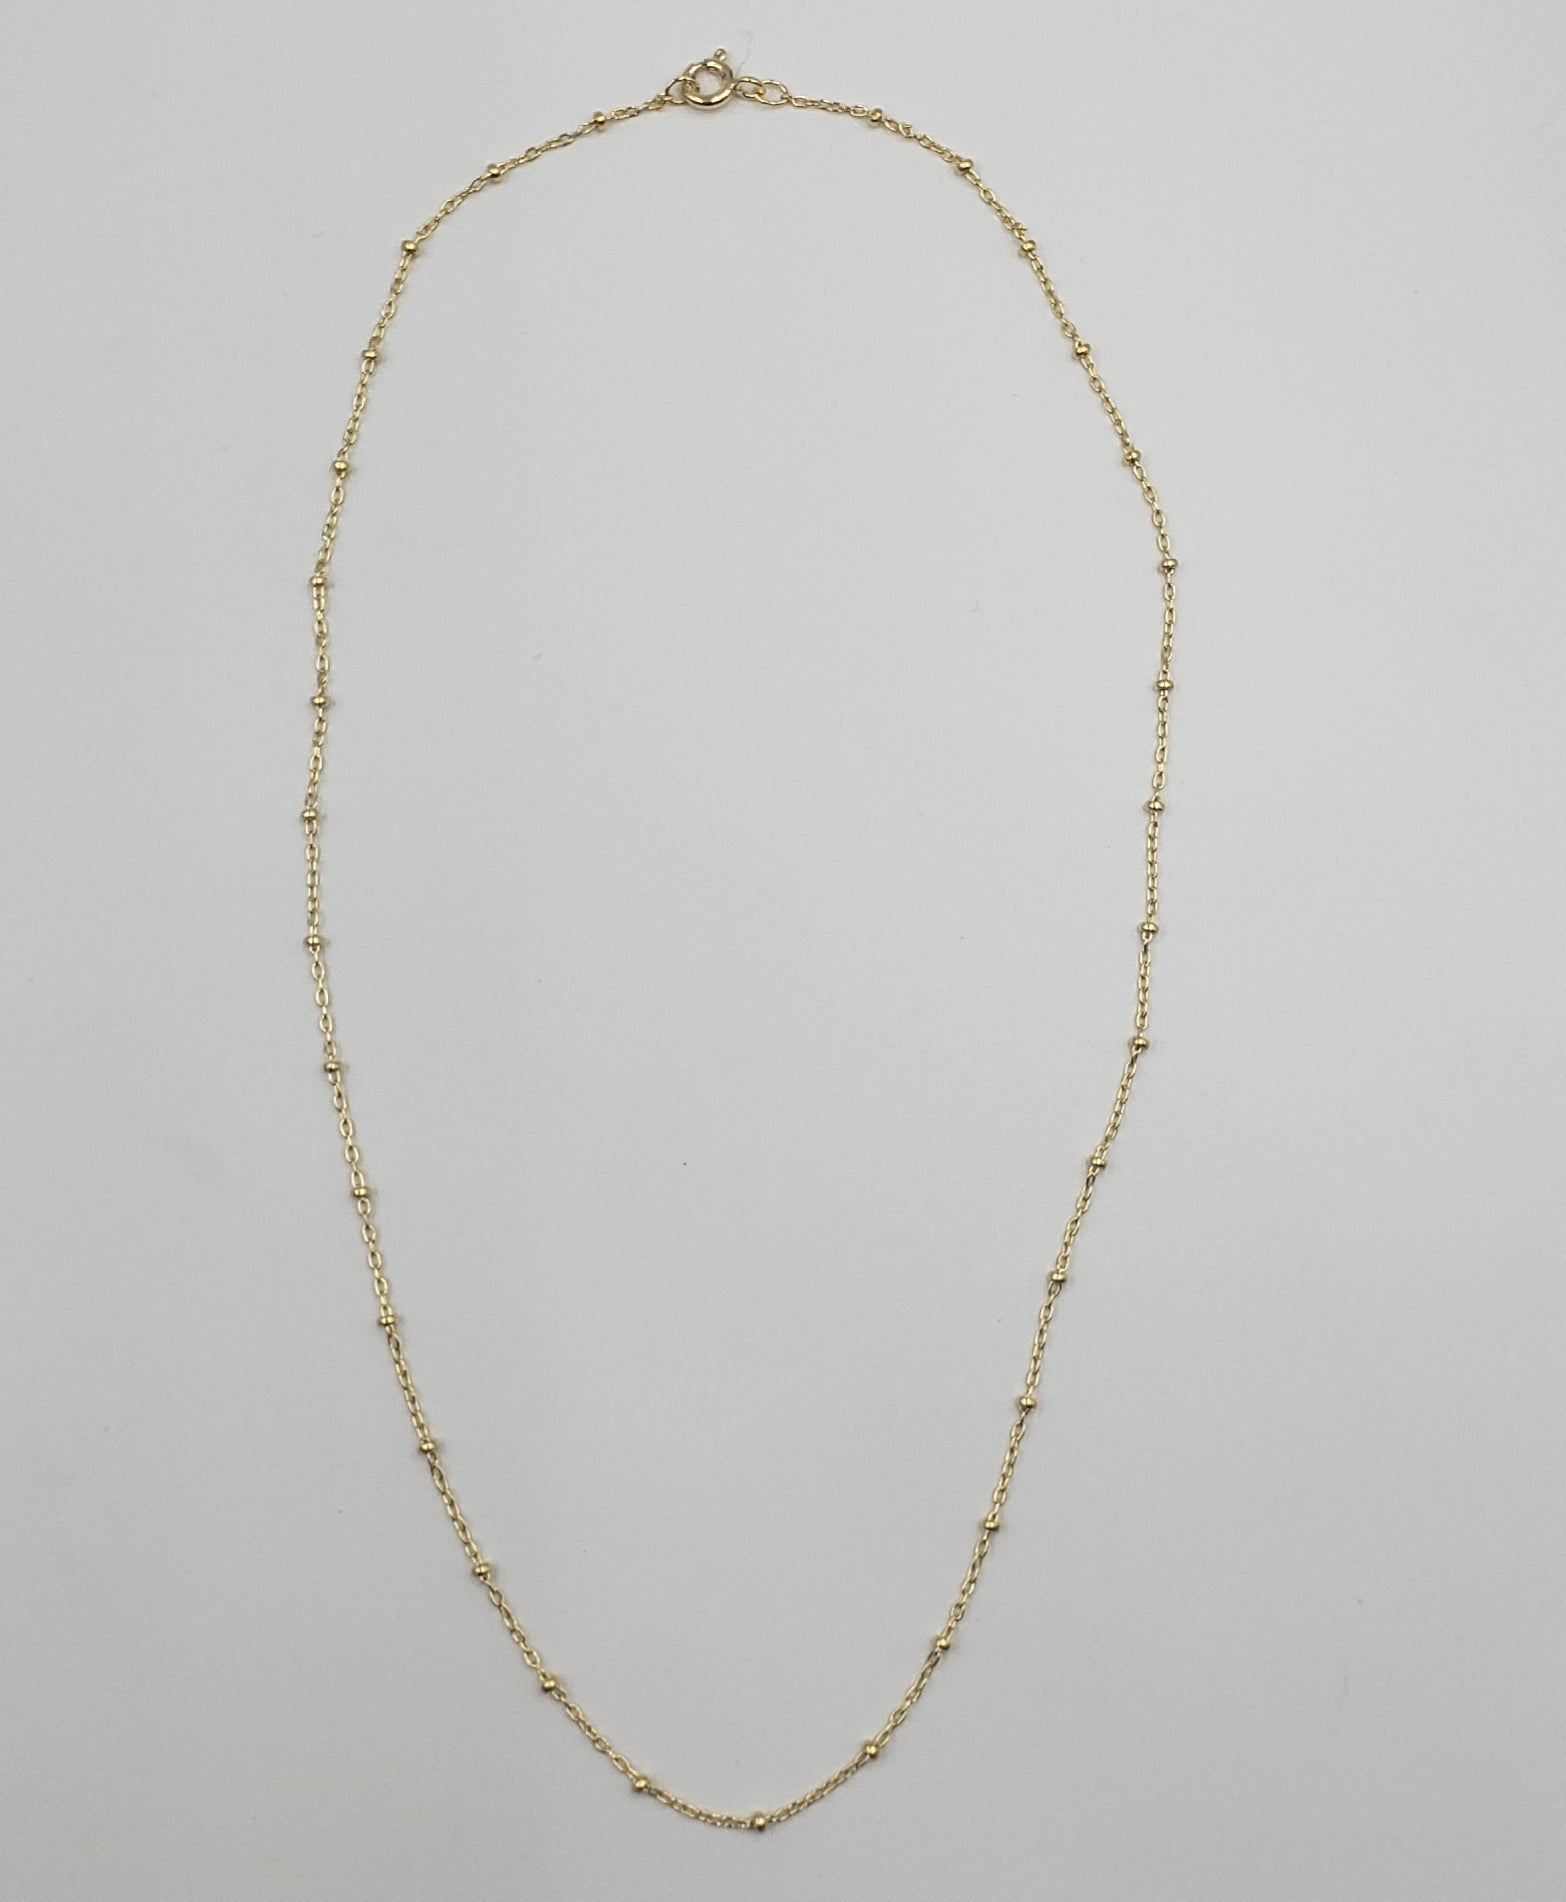 Gold Filled Beaded Chain